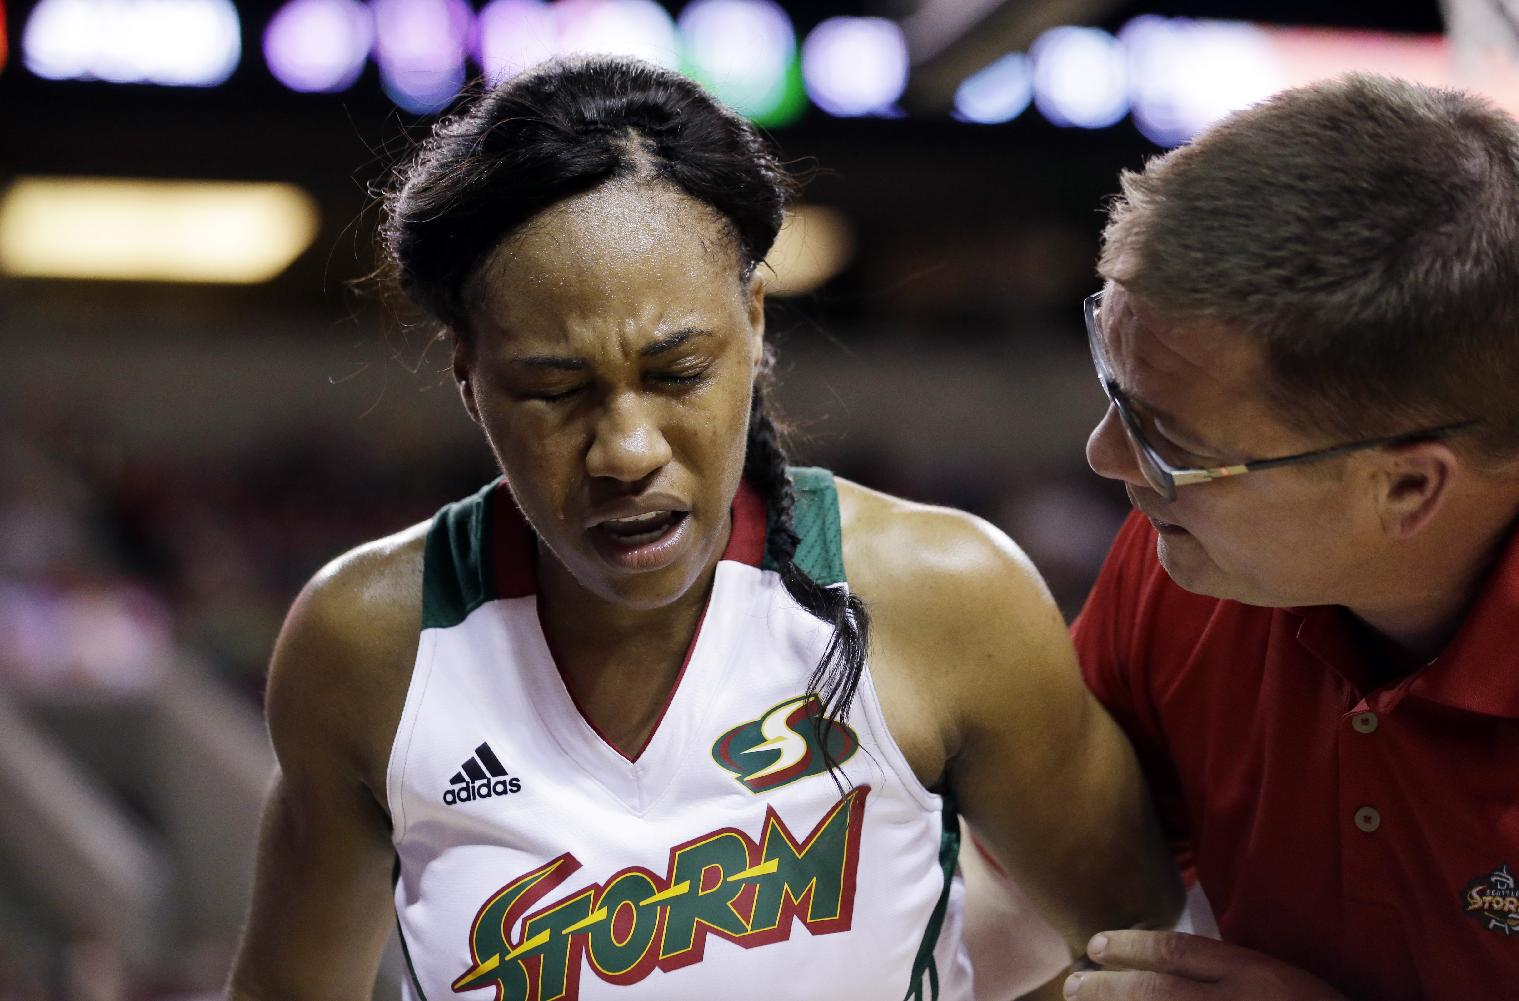 Seattle Storm's Temeka Johnson, left, is tended to by trainer Tom Spencer after being injured in the second half of a WNBA basketball game against the Los Angeles Sparks Friday, May 16, 2014, in Seattle. The Sparks won 80-69